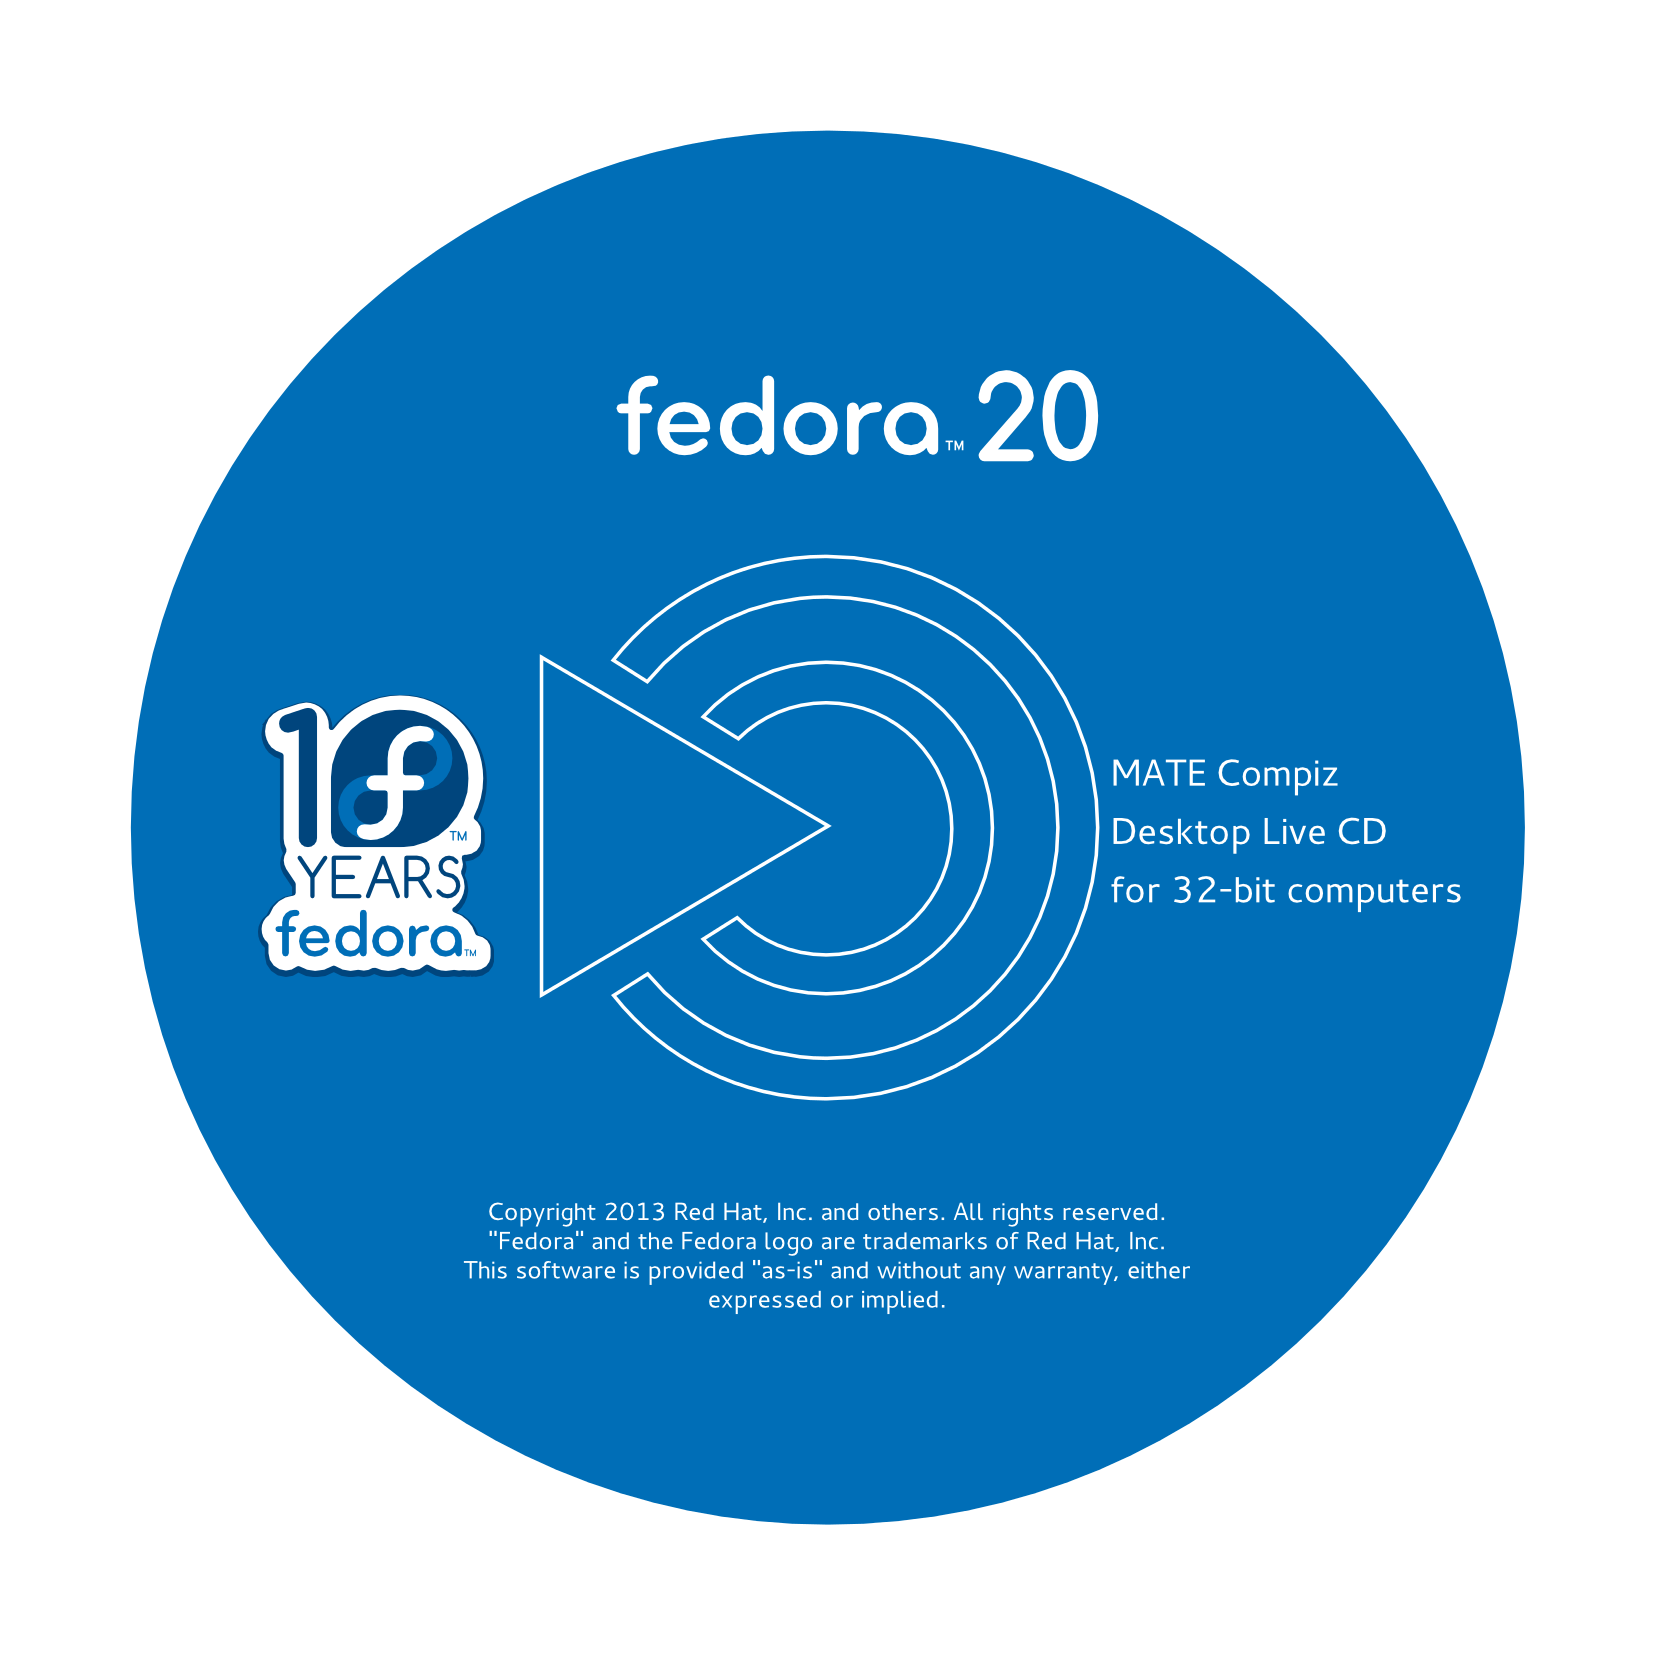 Fedora-20-livemedia-label-mate compiz-32.png